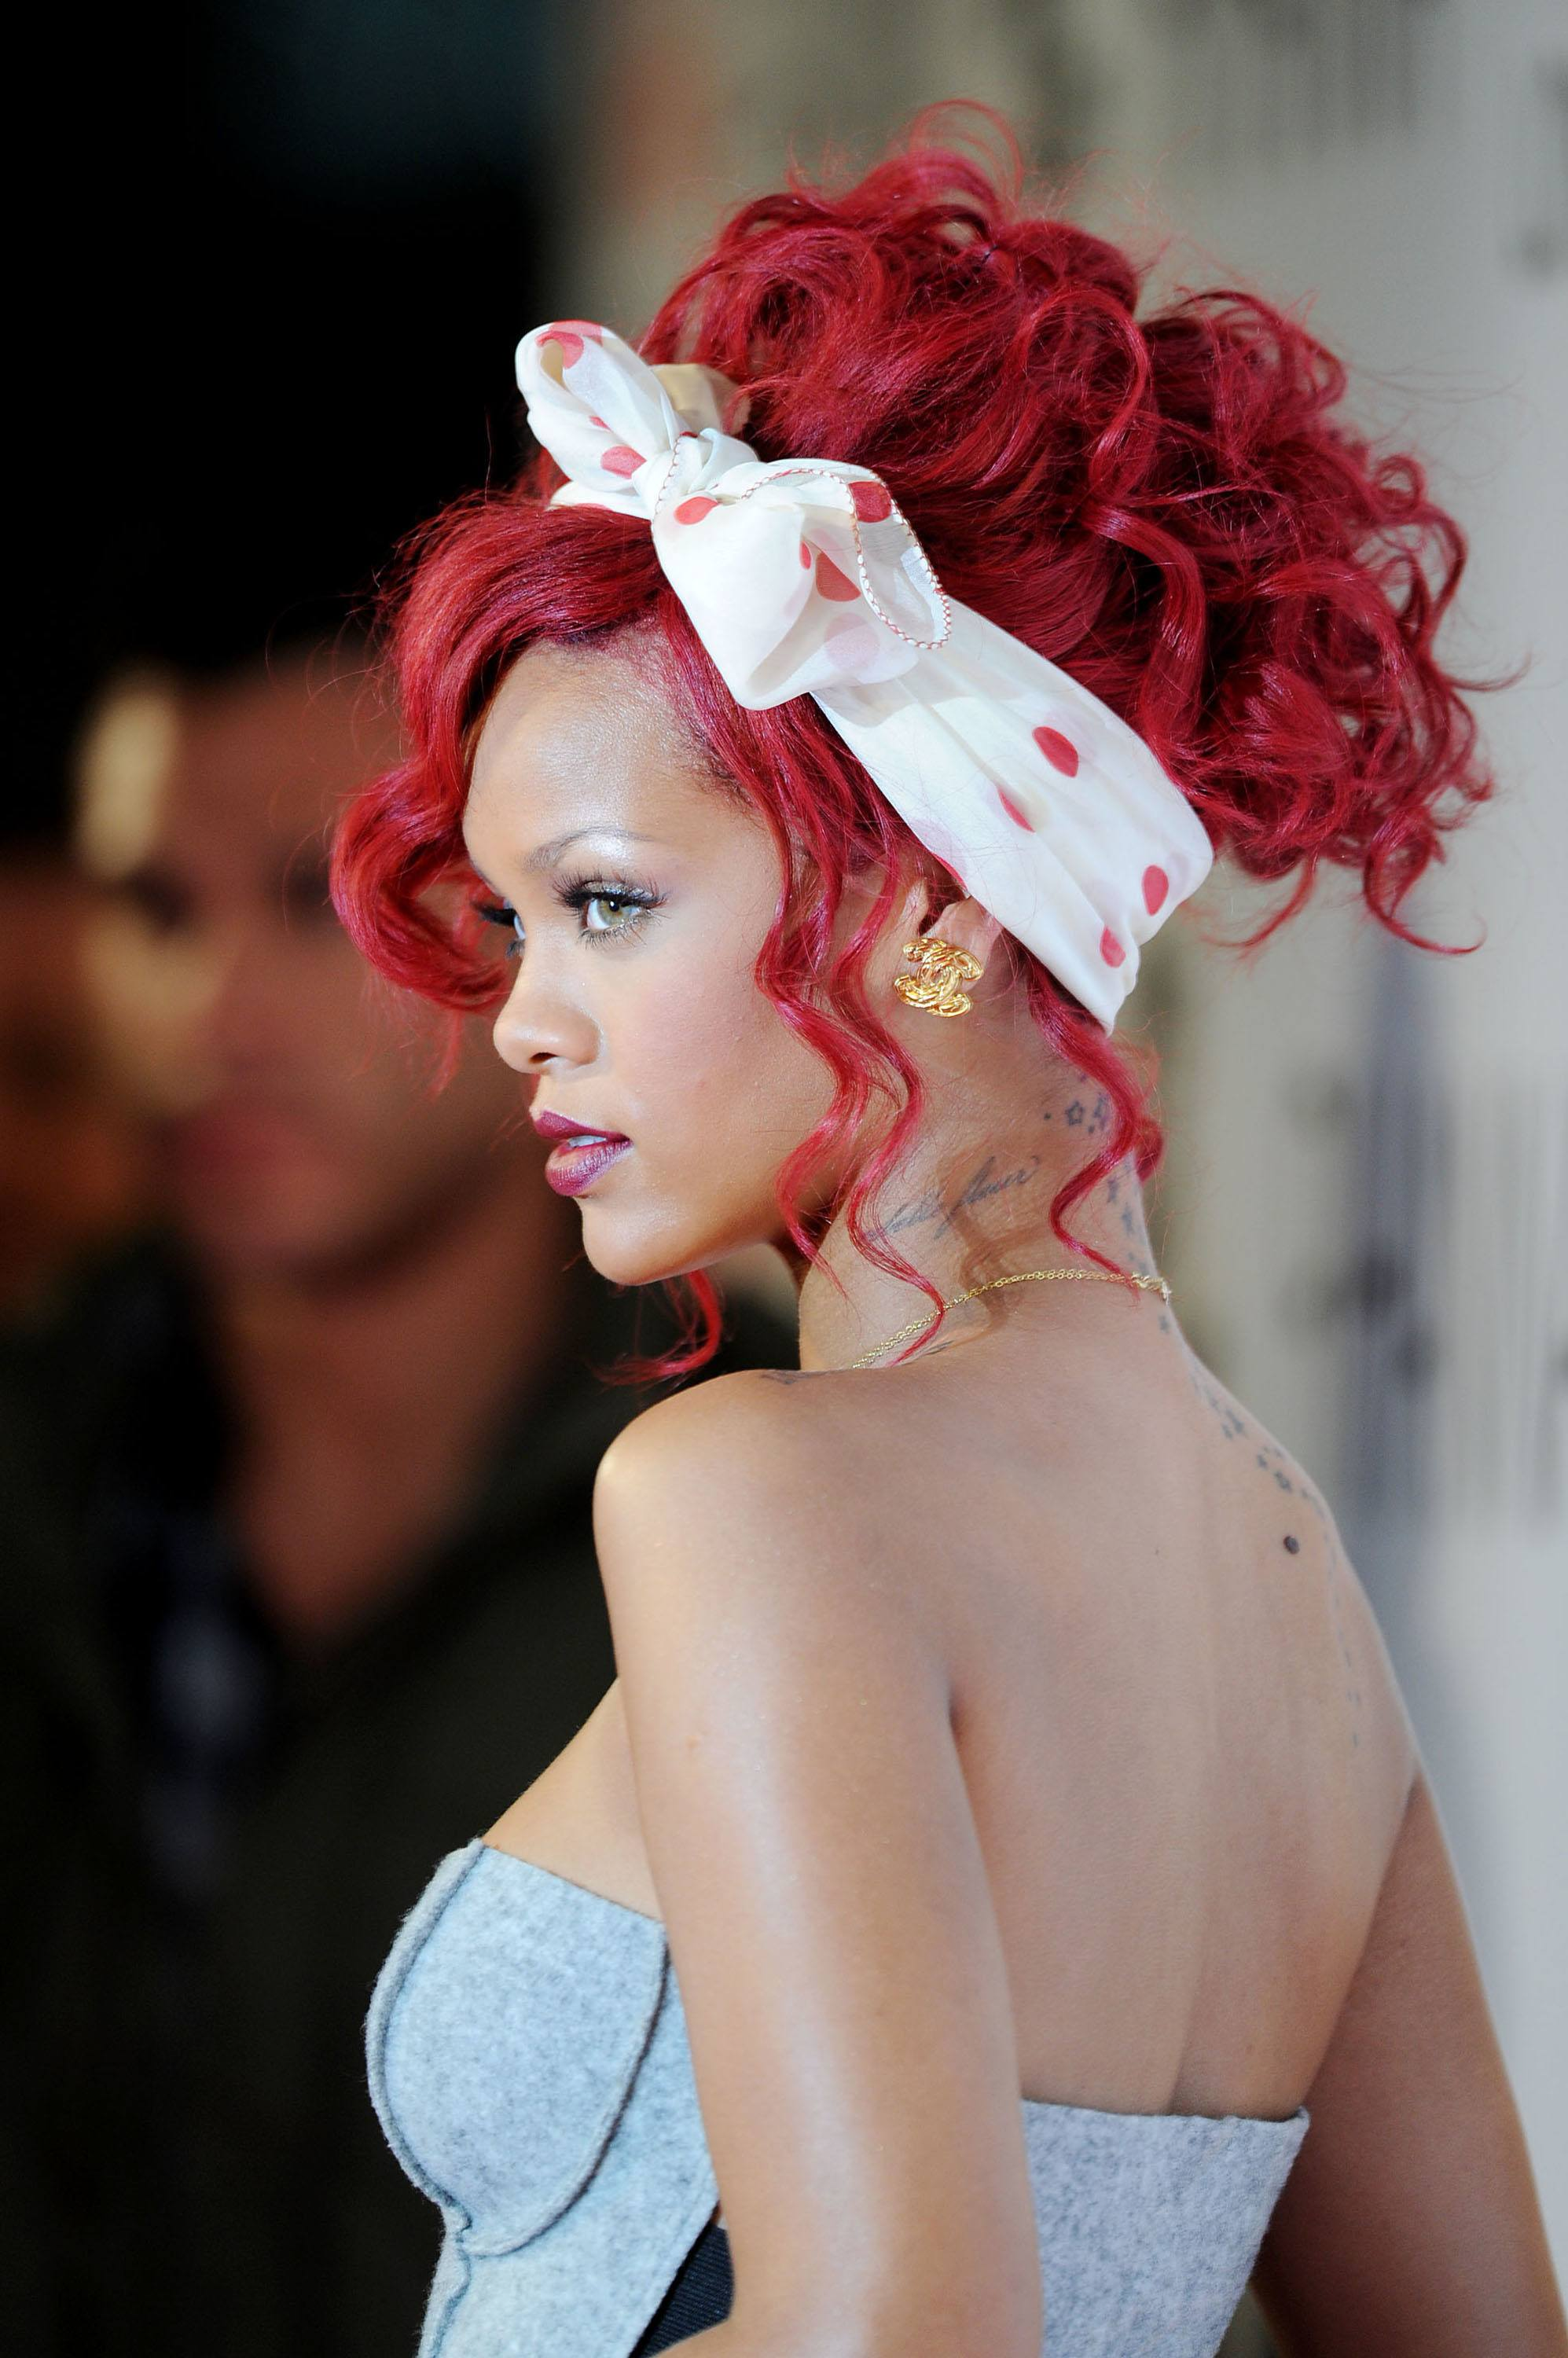 rihanna red hair in updo with bandana